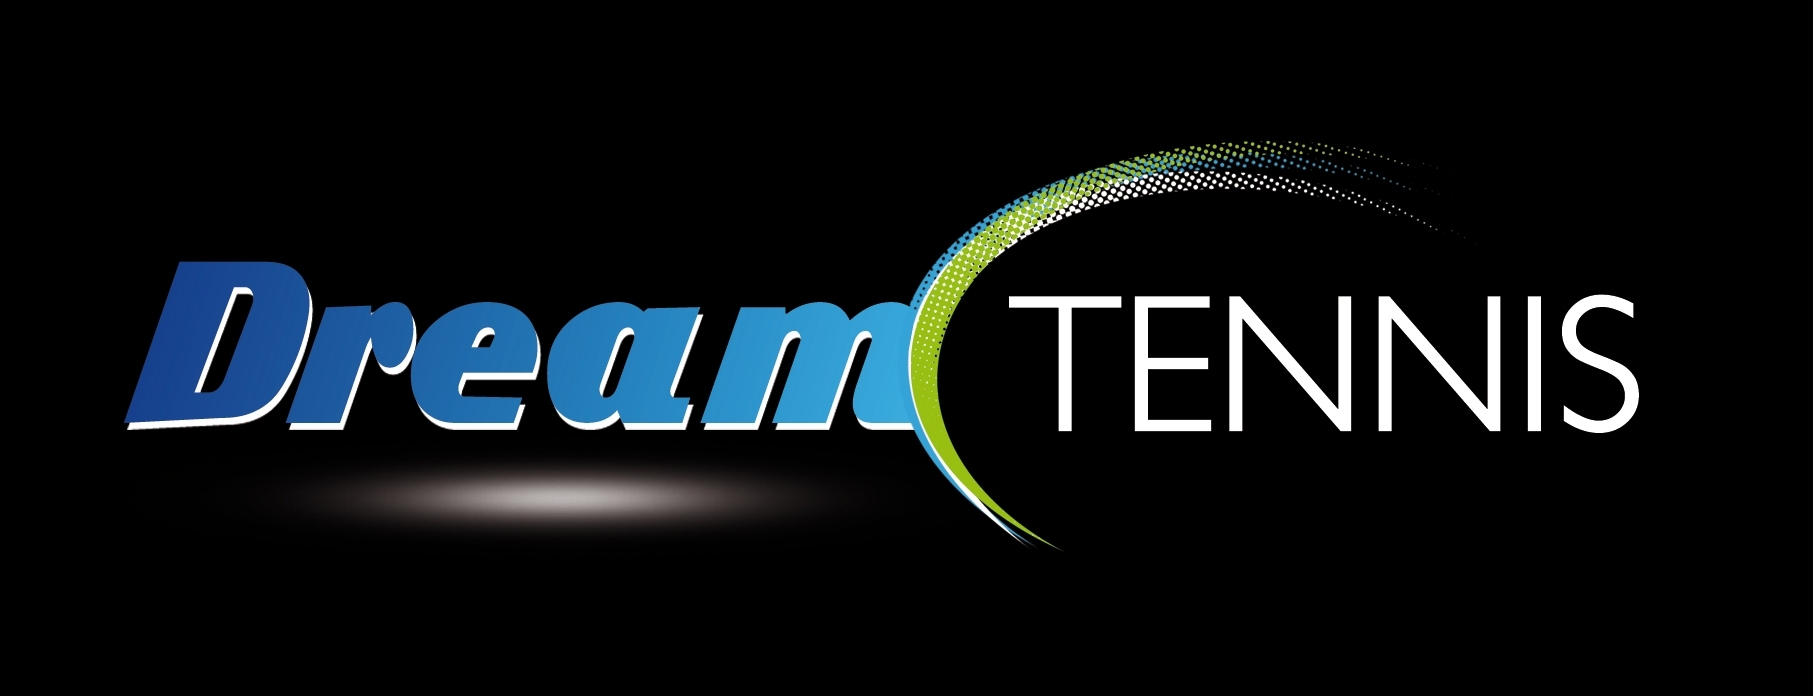 Photos - Dream Tennis